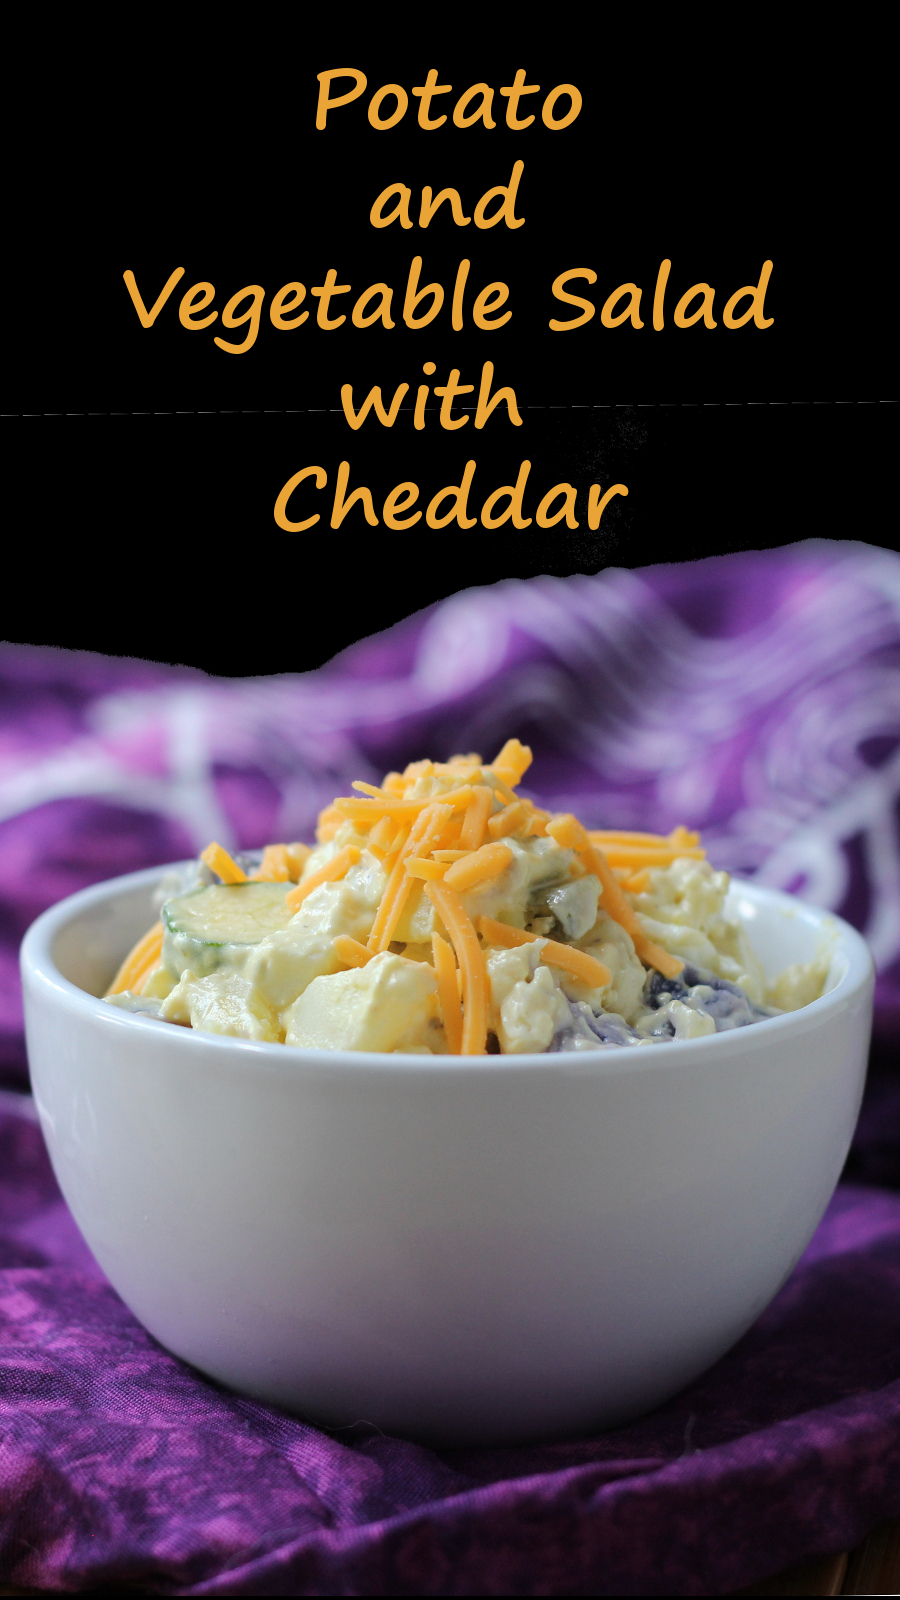 Cheddar Potato and Vegetable Salad